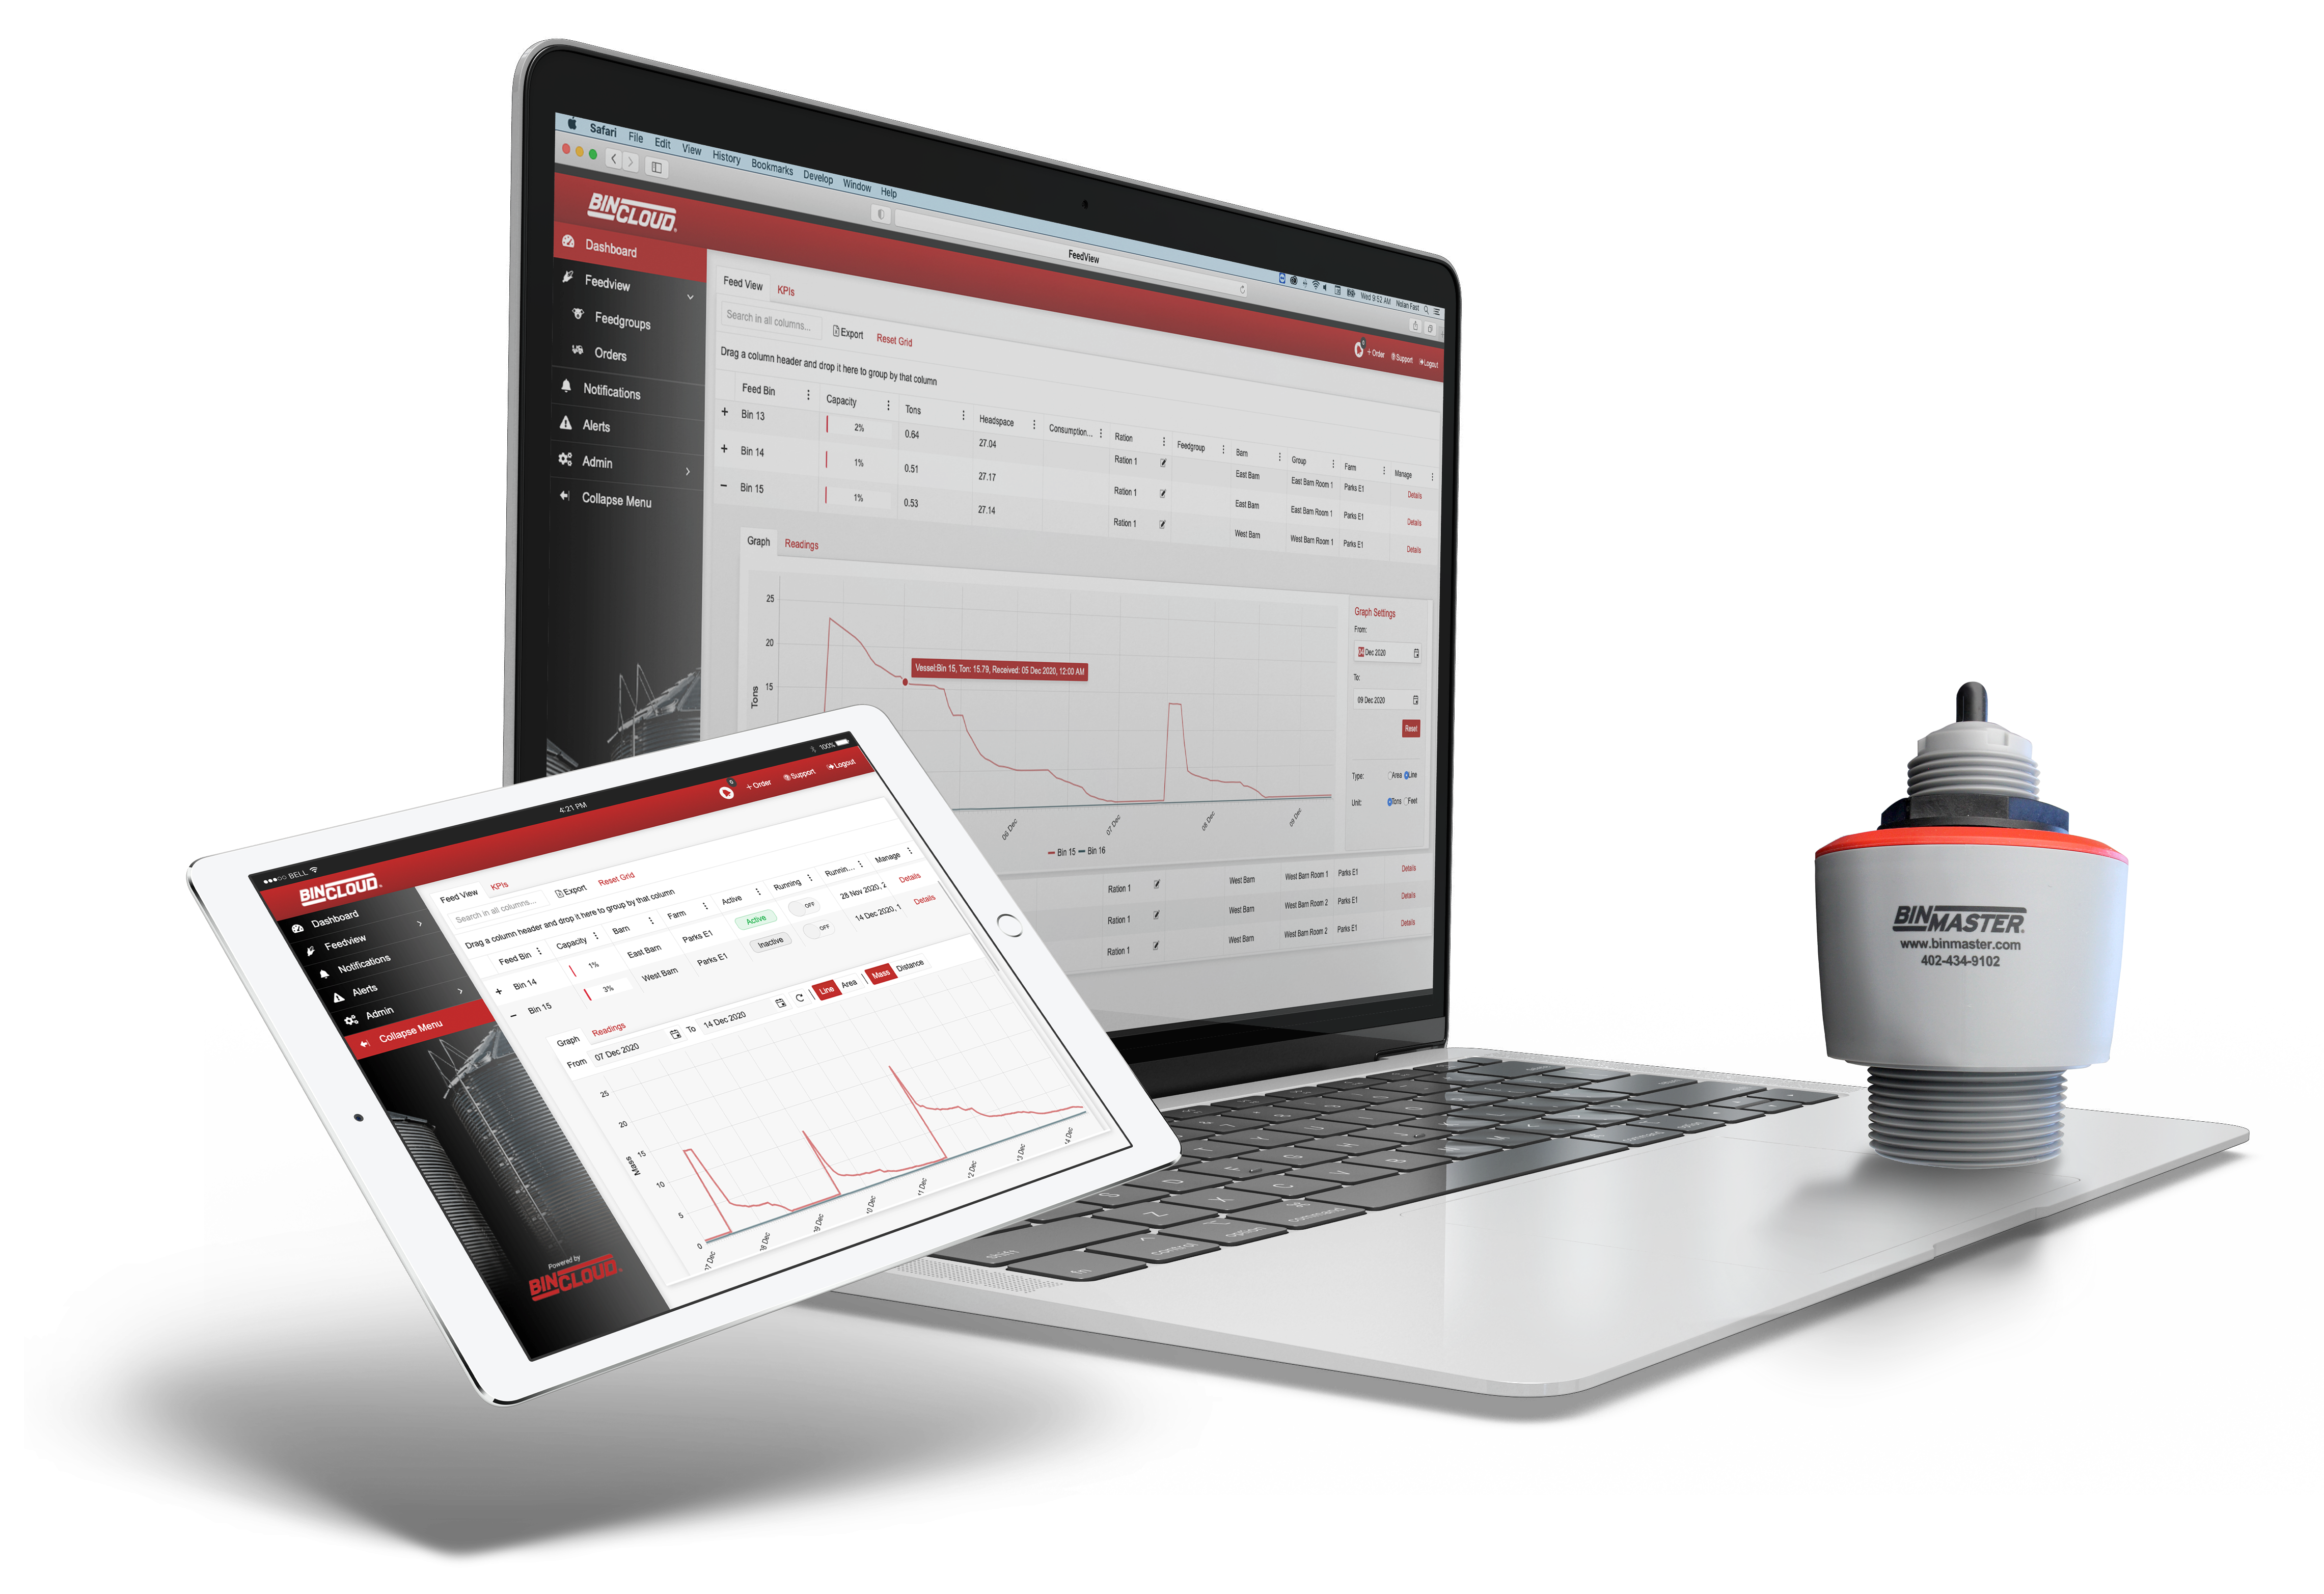 BinCloud inventory management software on laptop and iPad with sensor